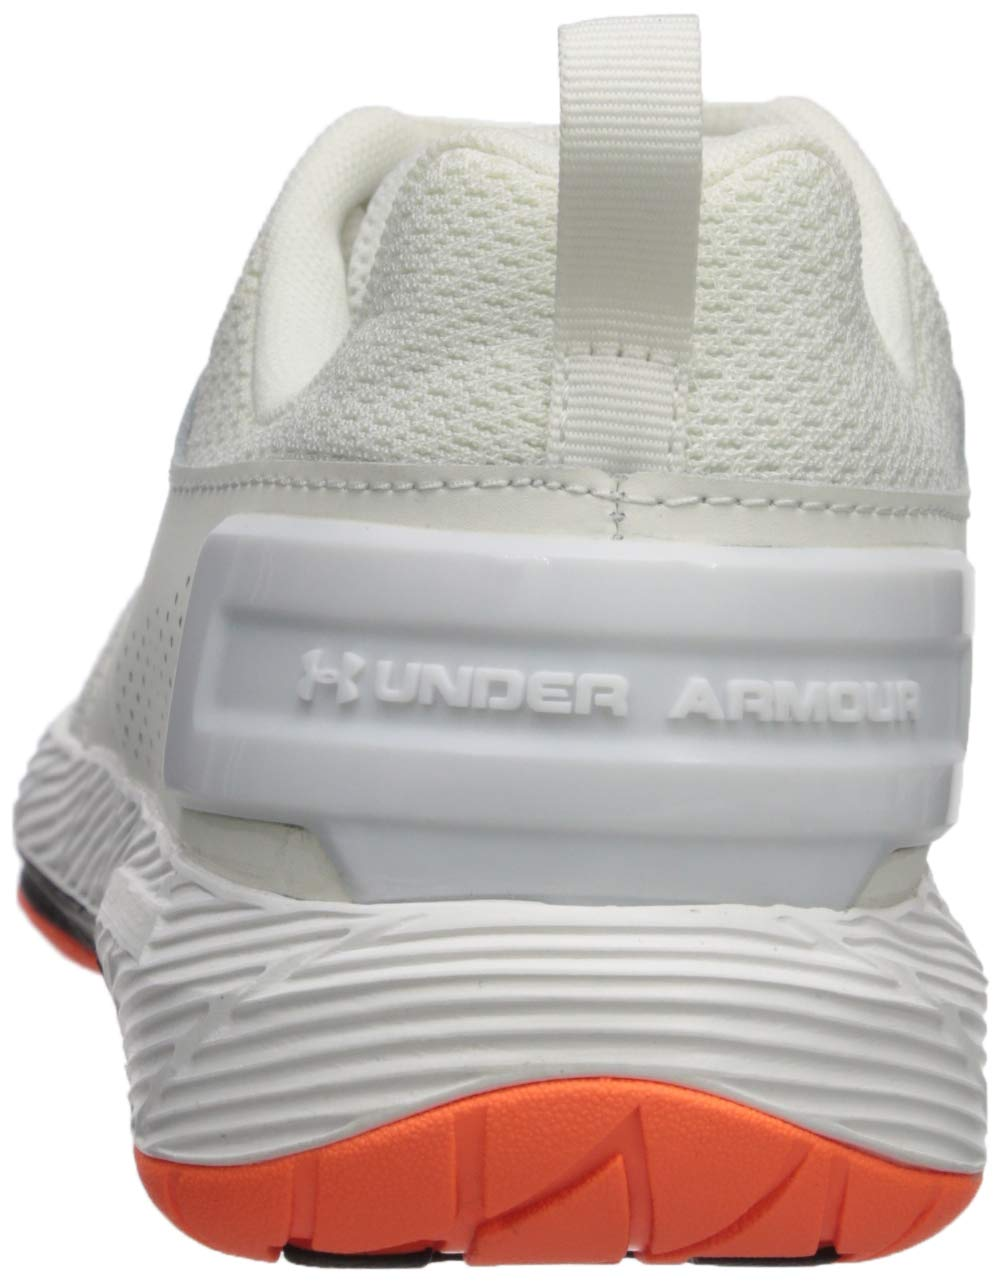 Under Armour Men's Commit TR EX Sneaker, Onyx White (108)/Black, 7 M US by Under Armour (Image #2)